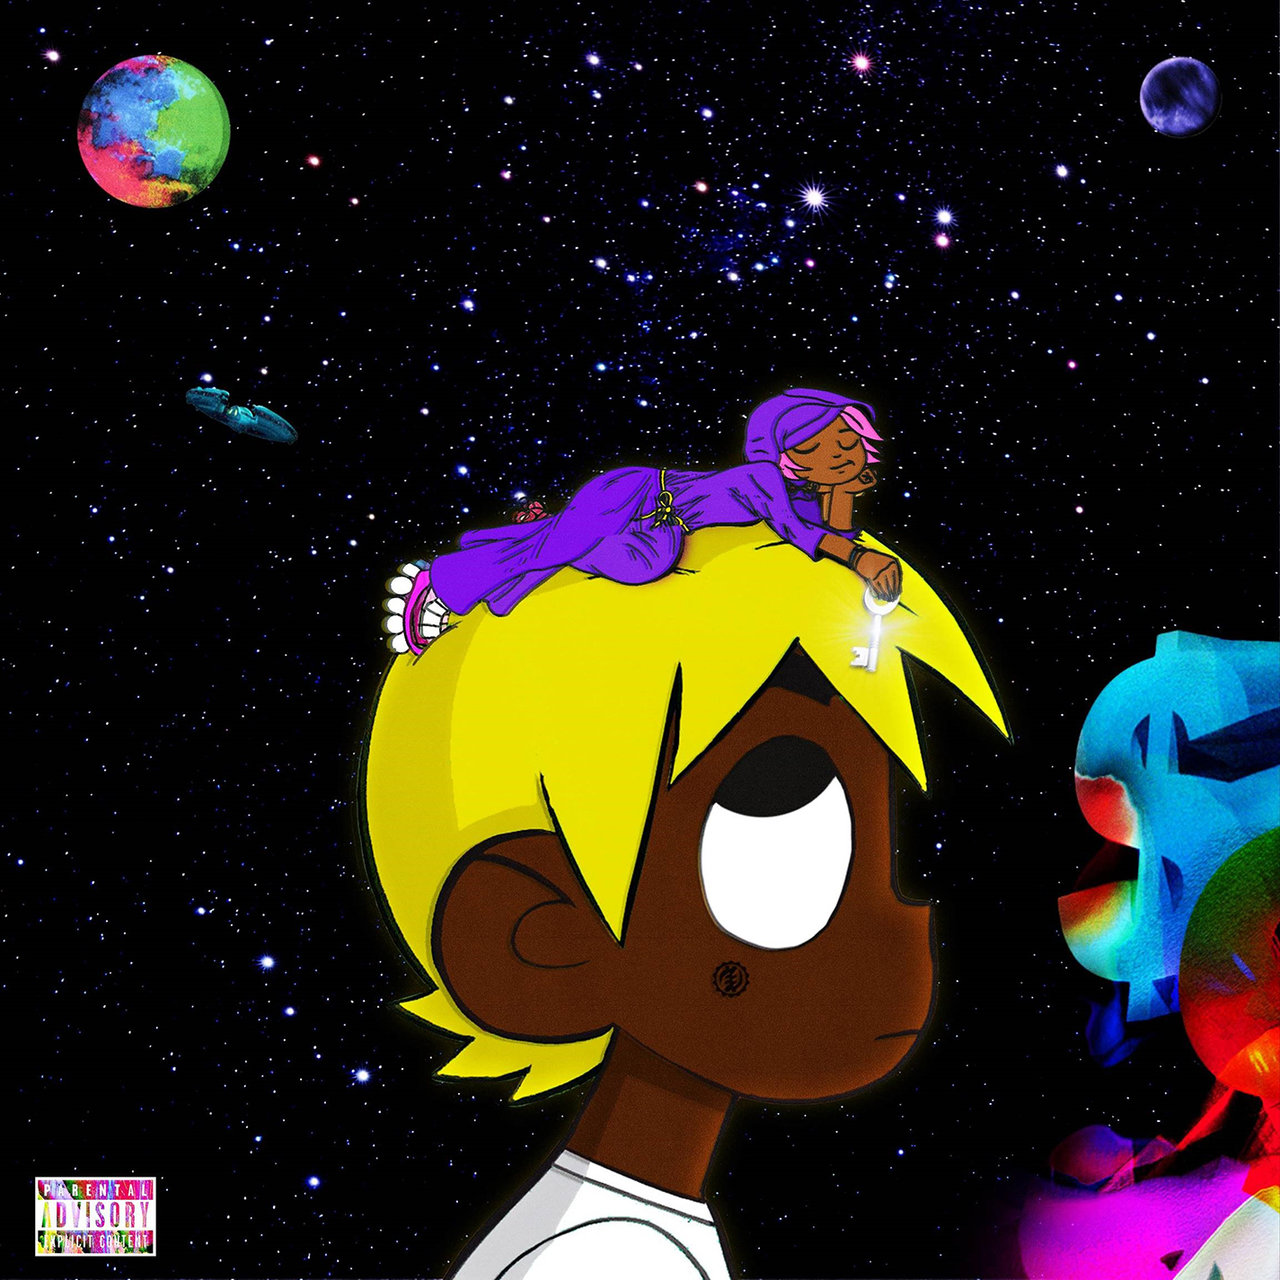 Lil Uzi Vert - Eternal Atake (Deluxe) - LUV Vs. The World 2 (Cover)